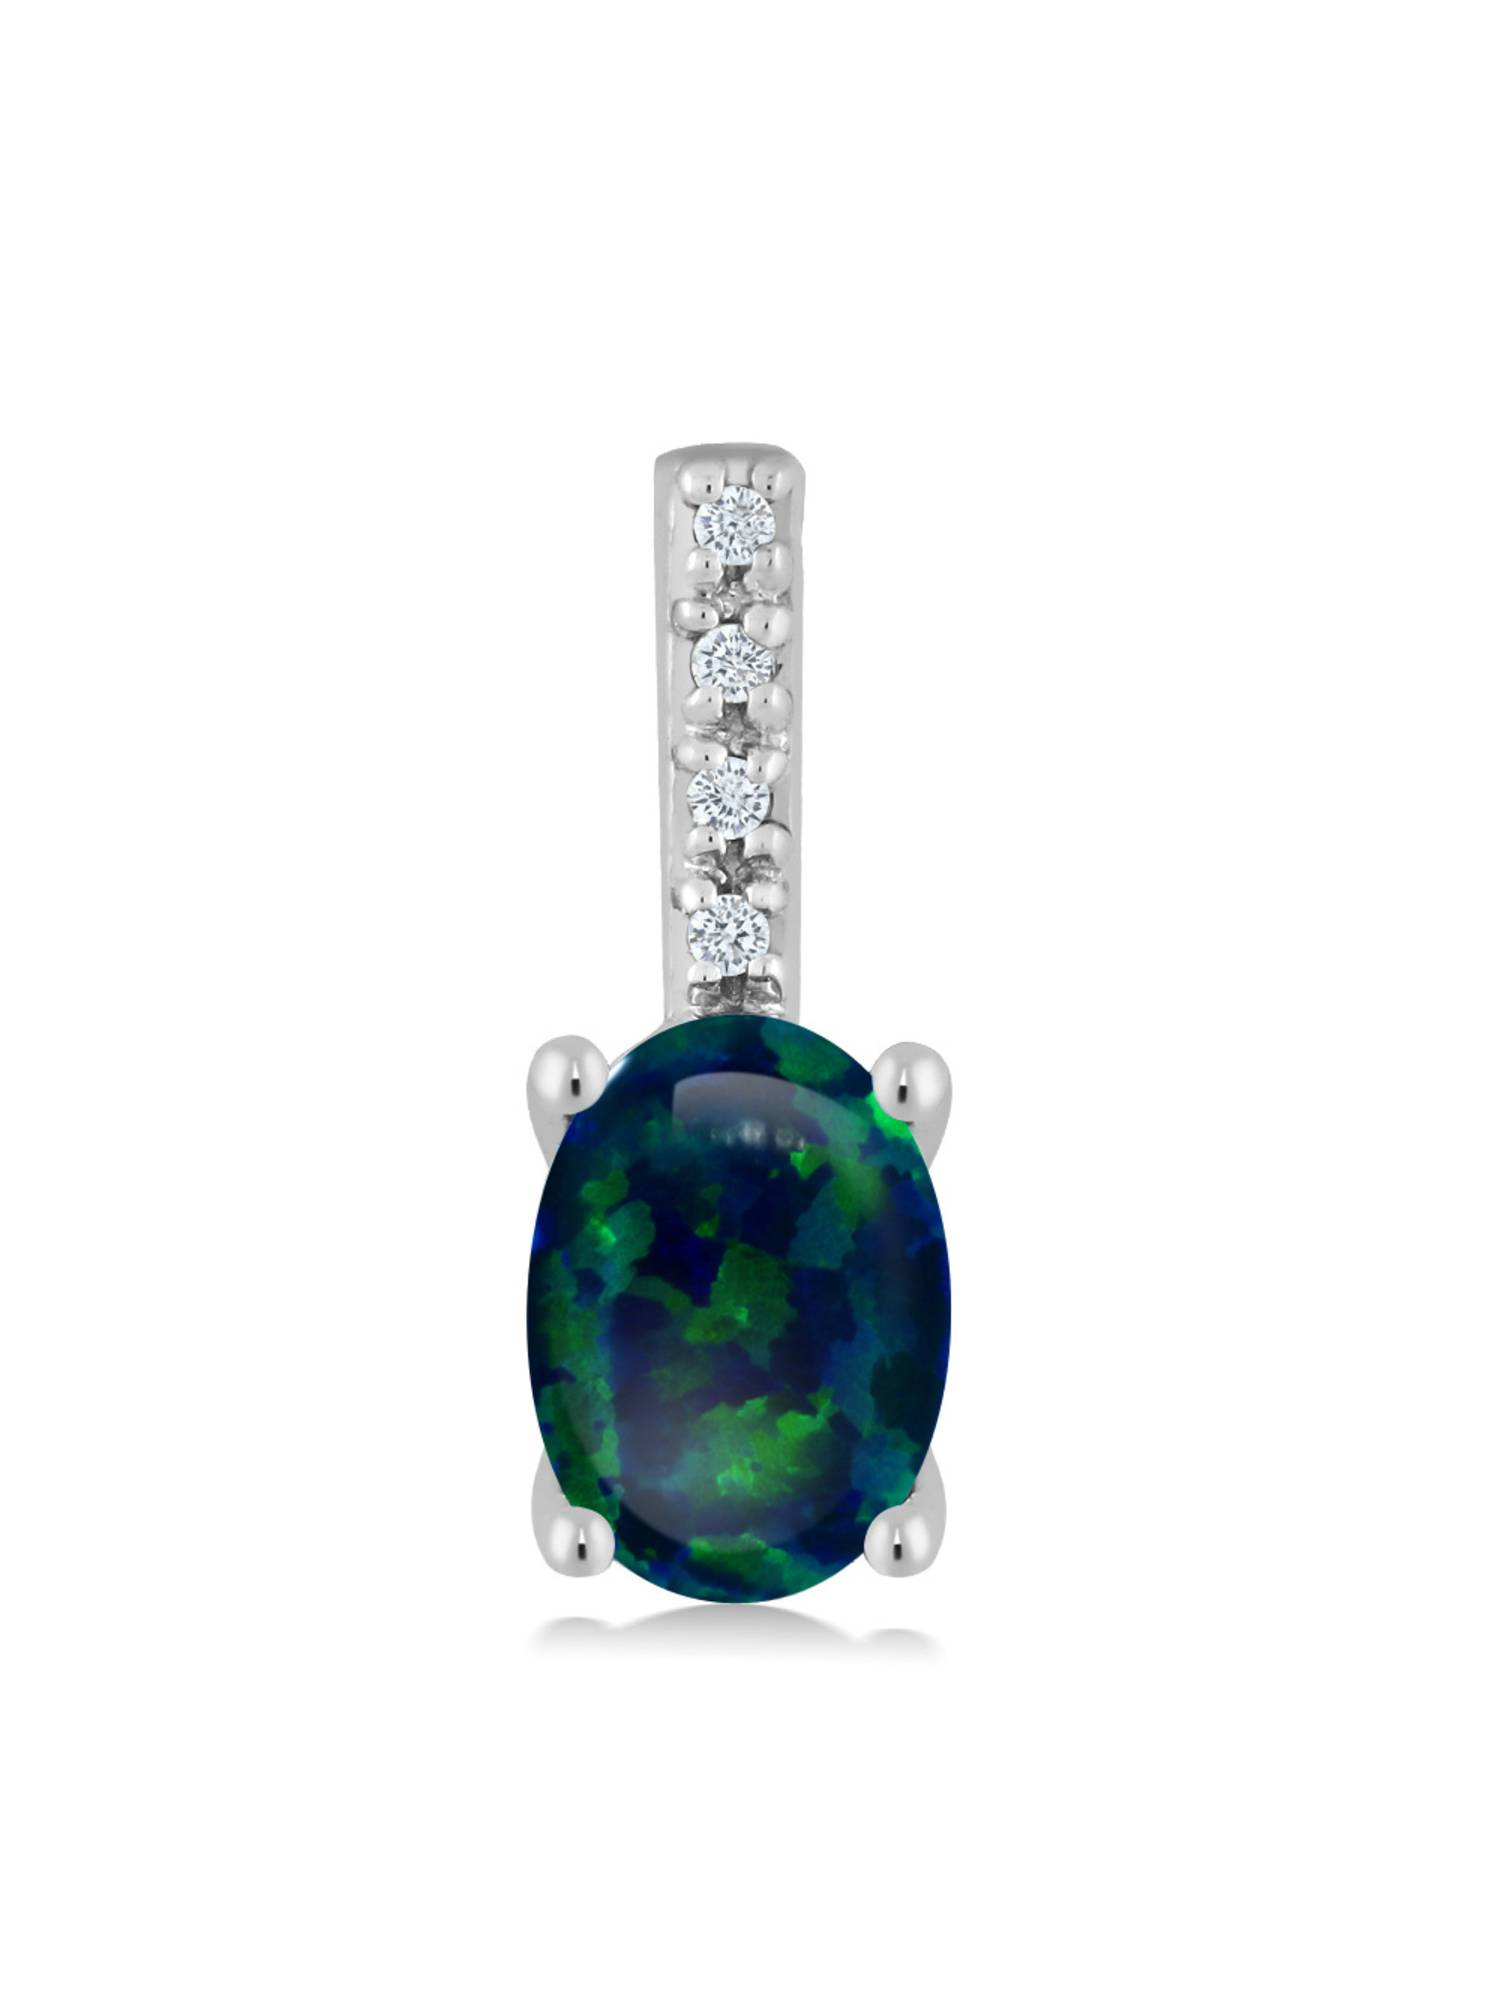 10K White Gold 0.63 Ct Oval Cabochon Green Simulated Opal Diamond Bail Necklace by